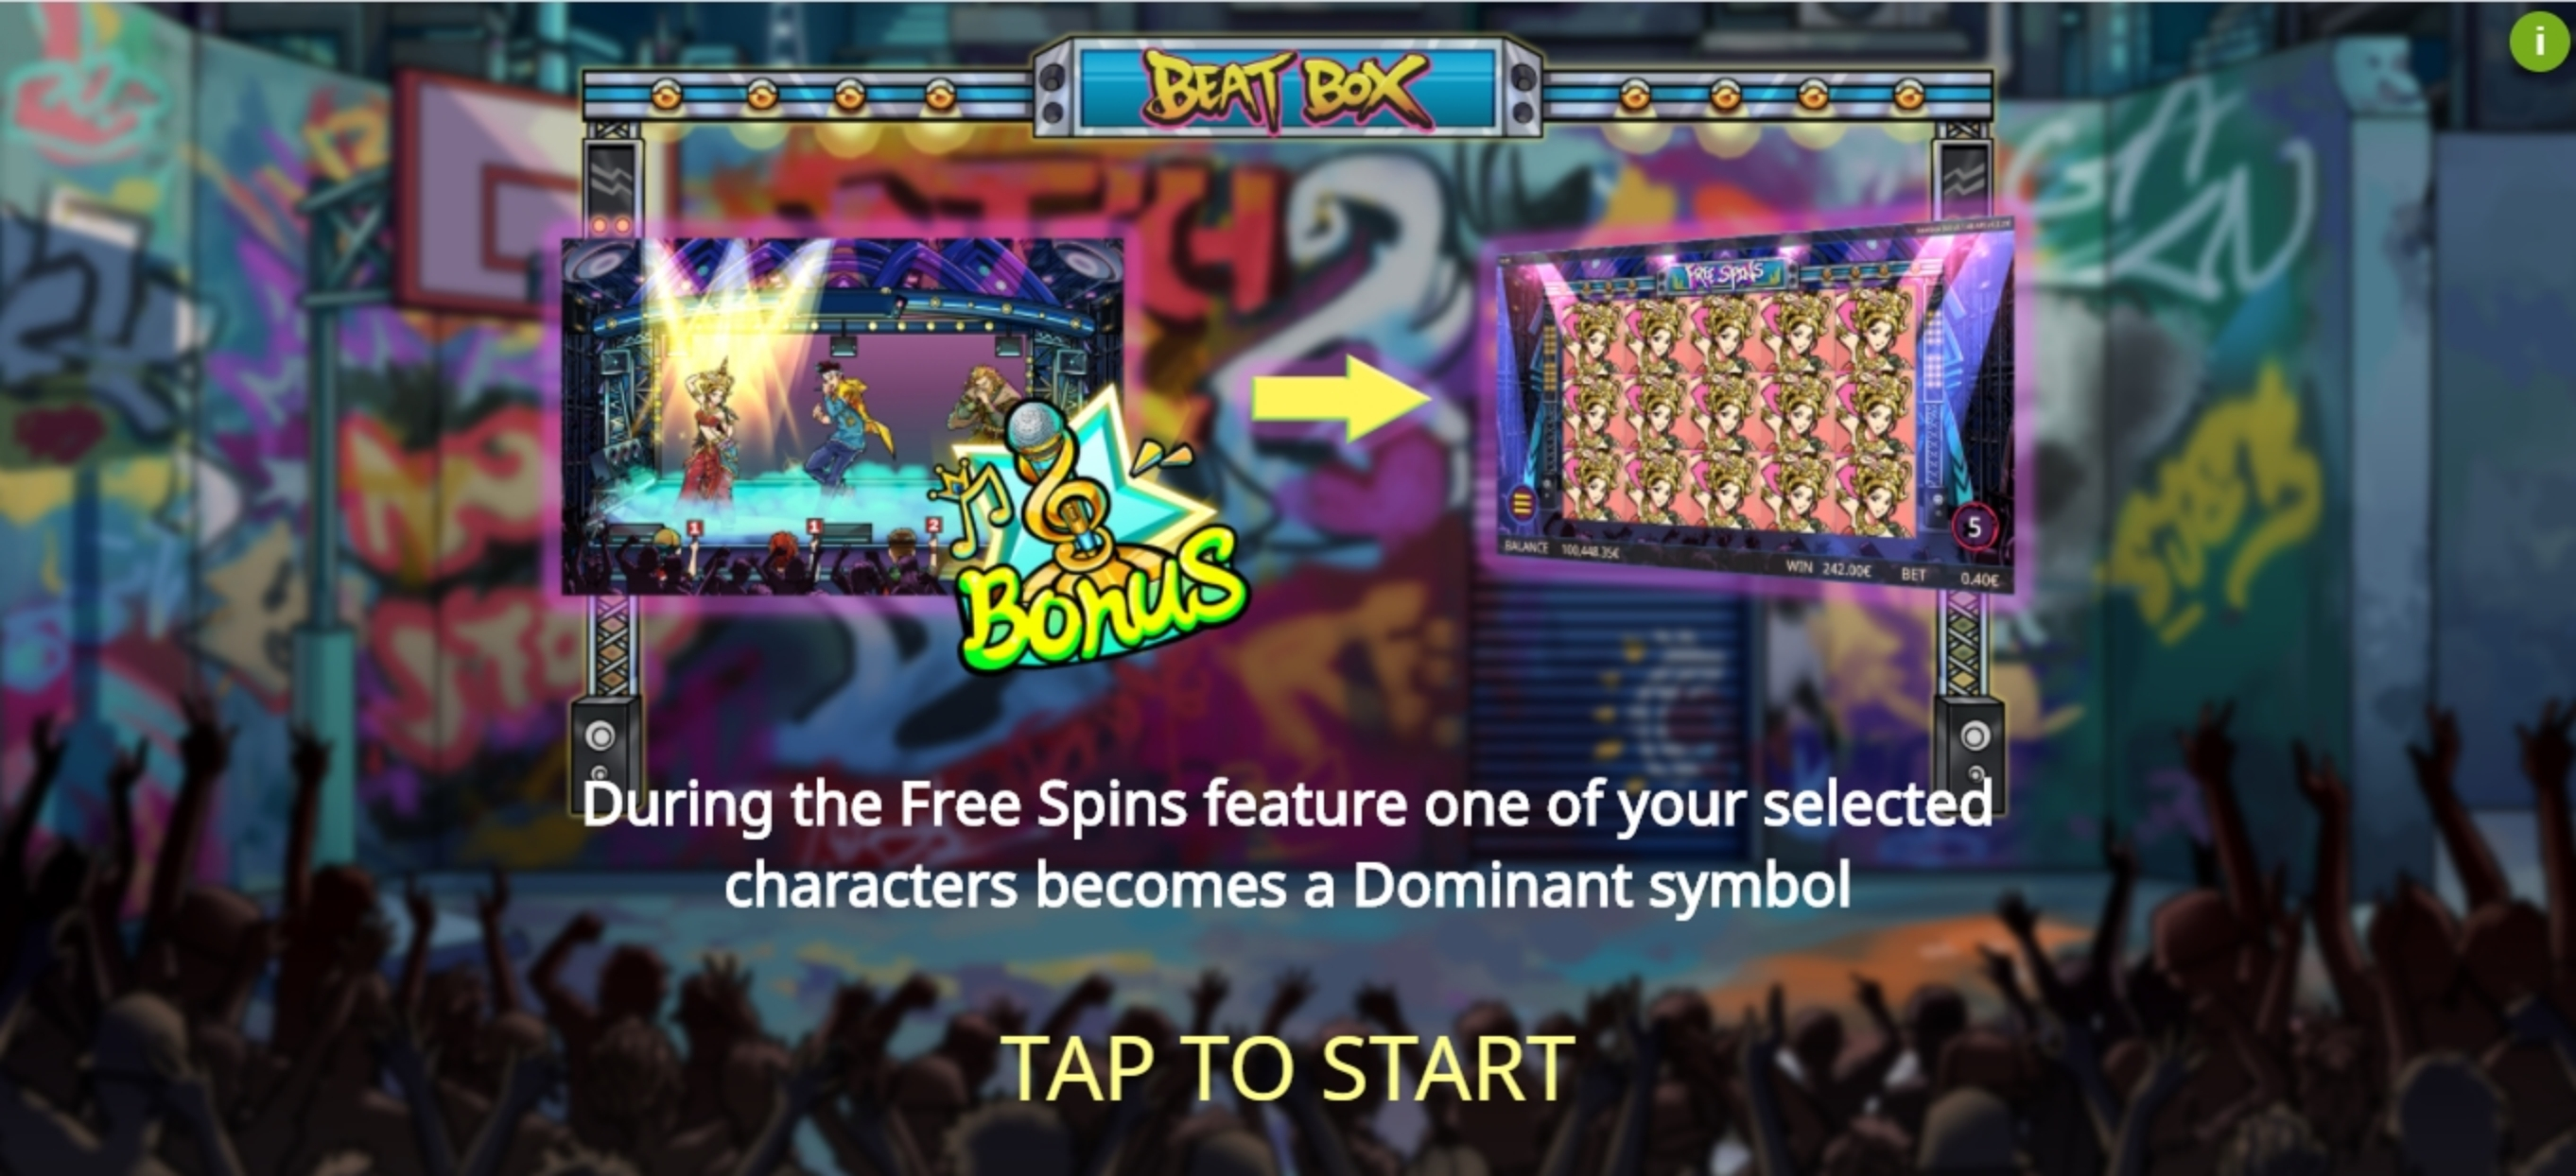 Play Beat Box Free Casino Slot Game by Gamatron